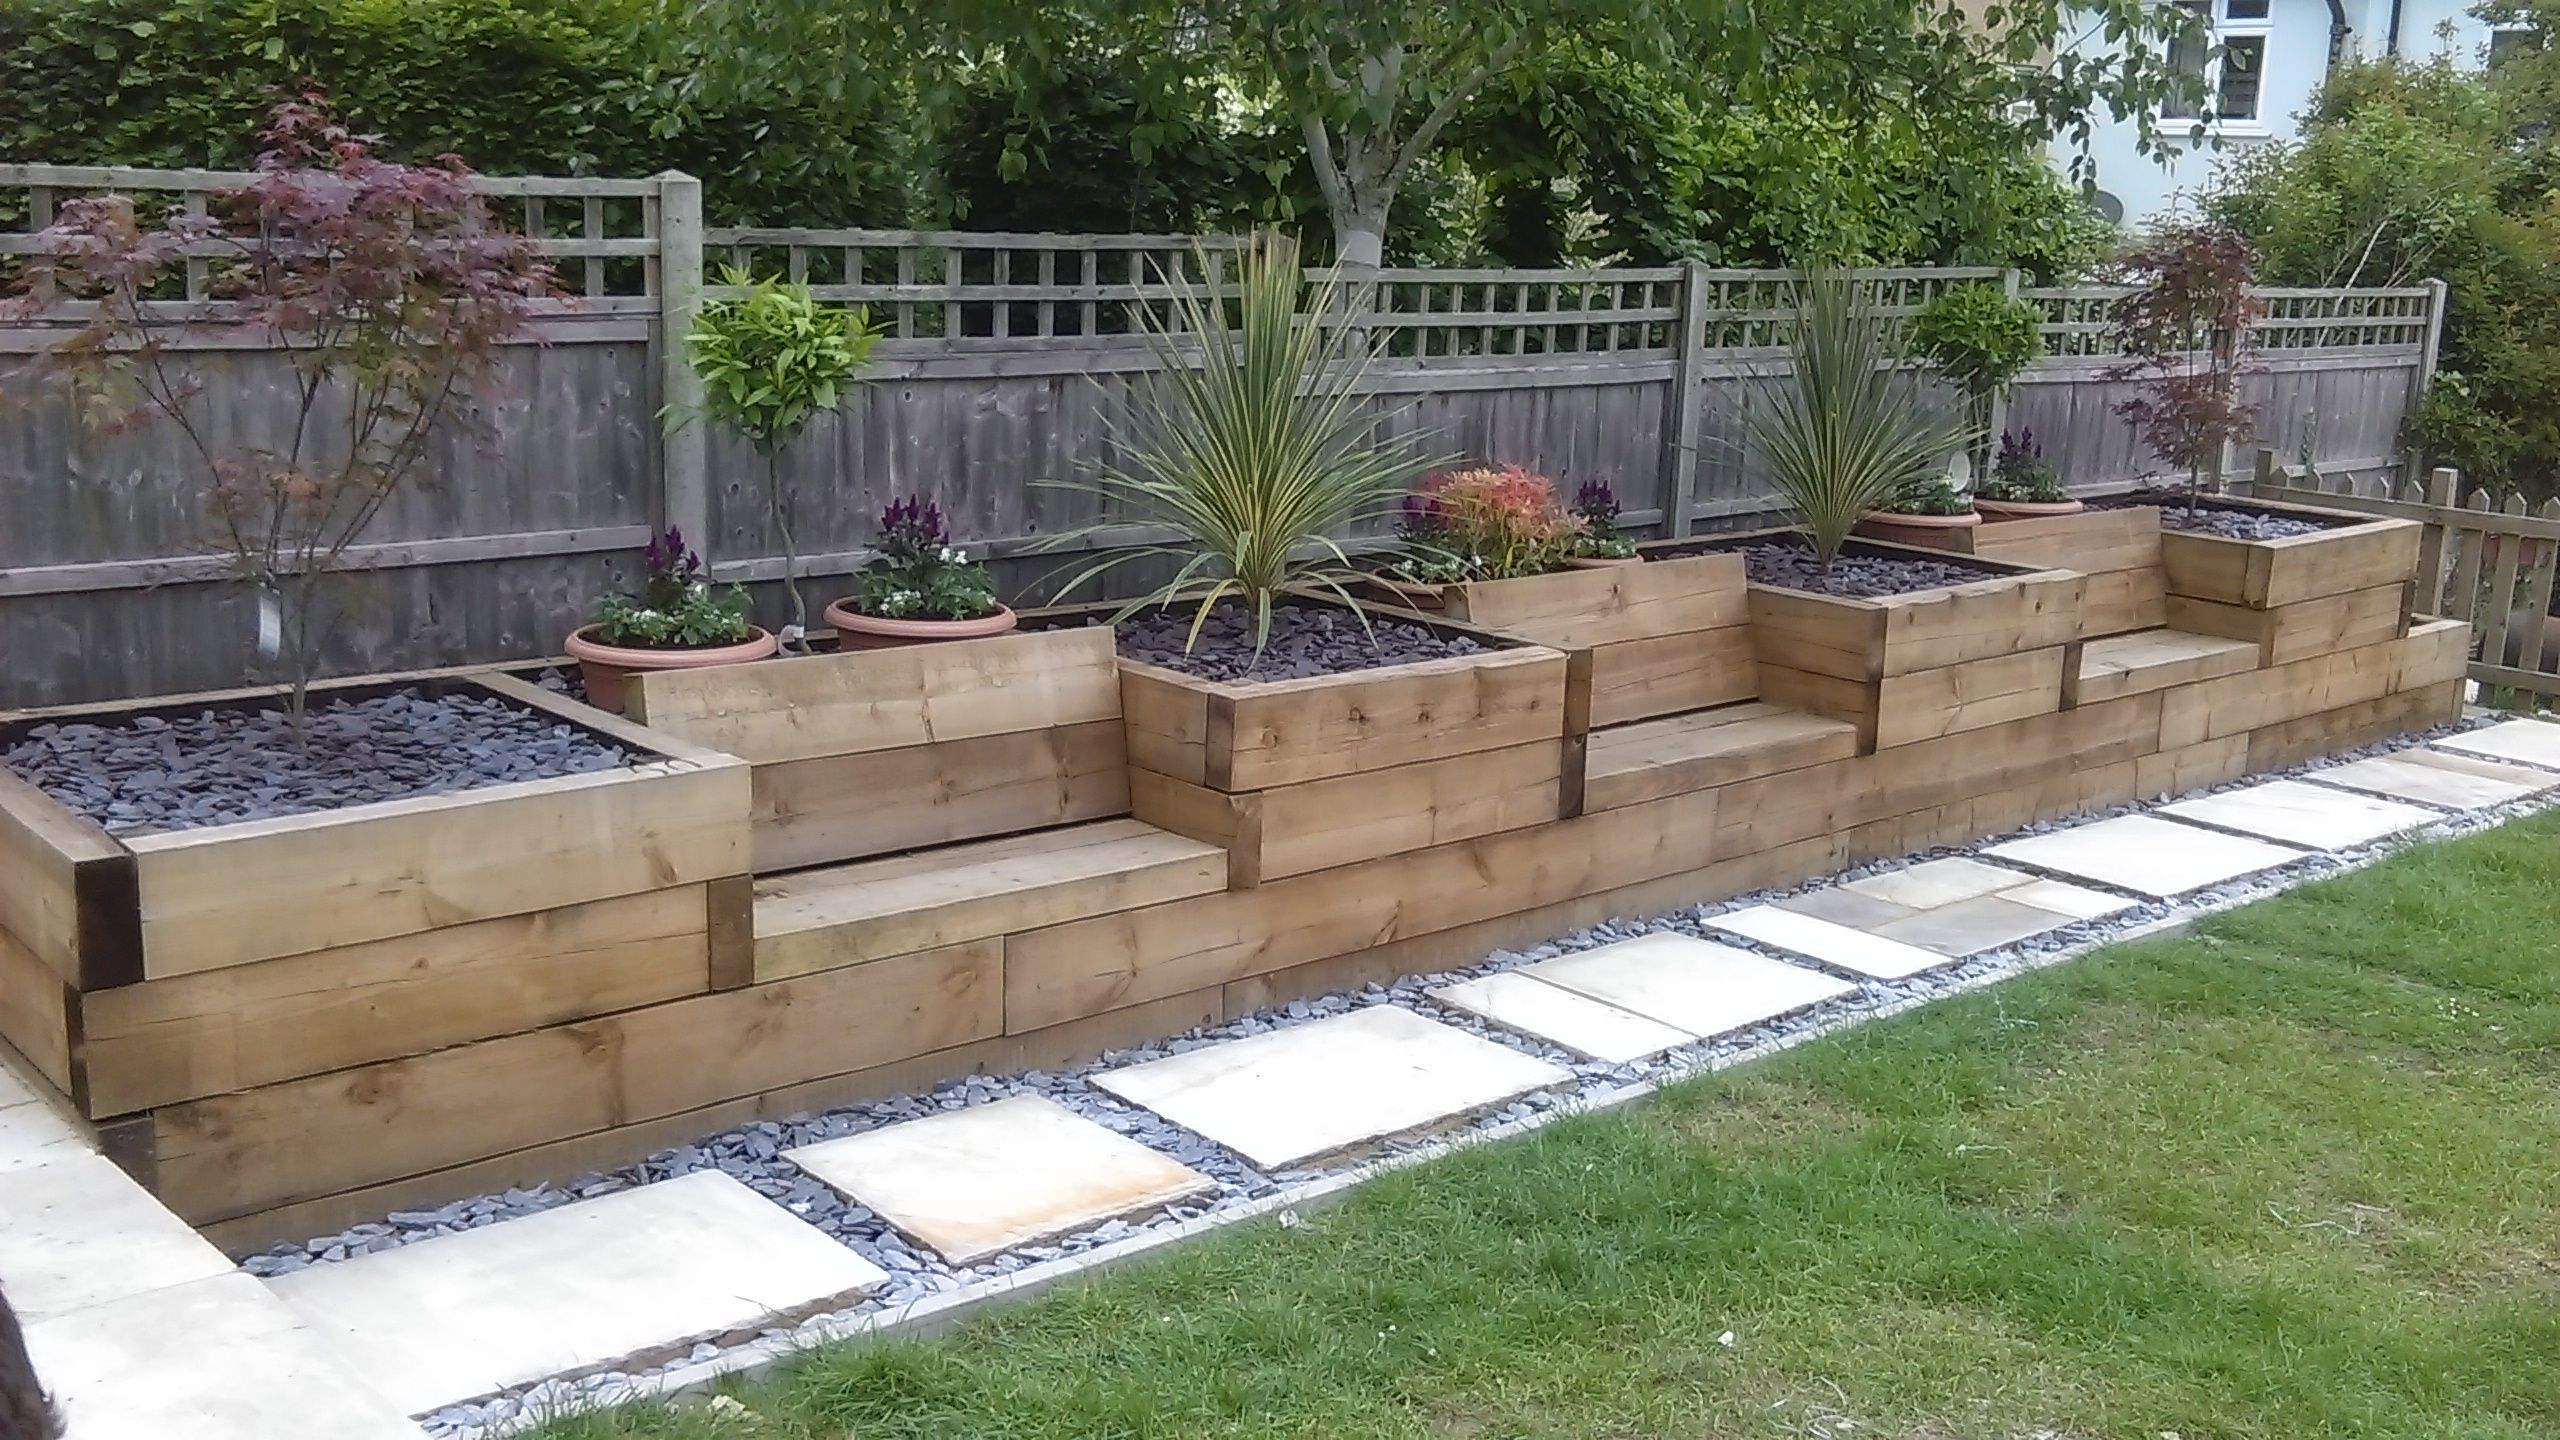 Raised beds with integrated garden seating made from